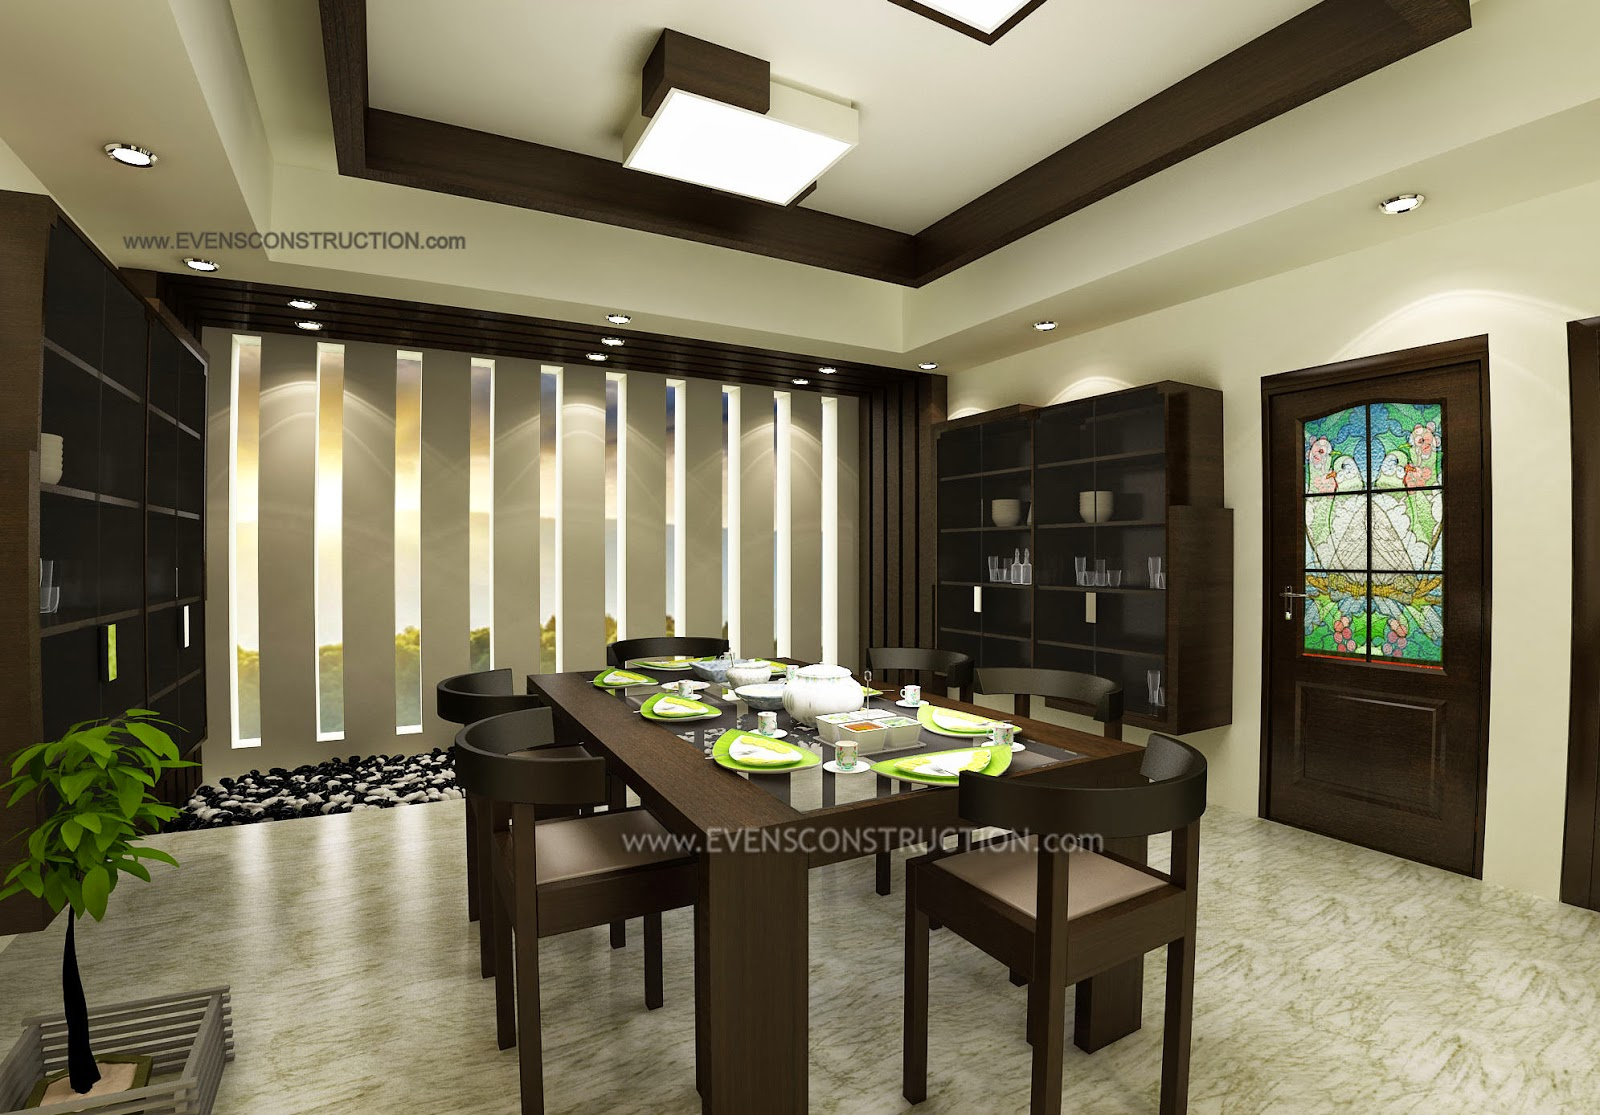 Evens construction pvt ltd modern dining room - Modern dining room decor ideas ...